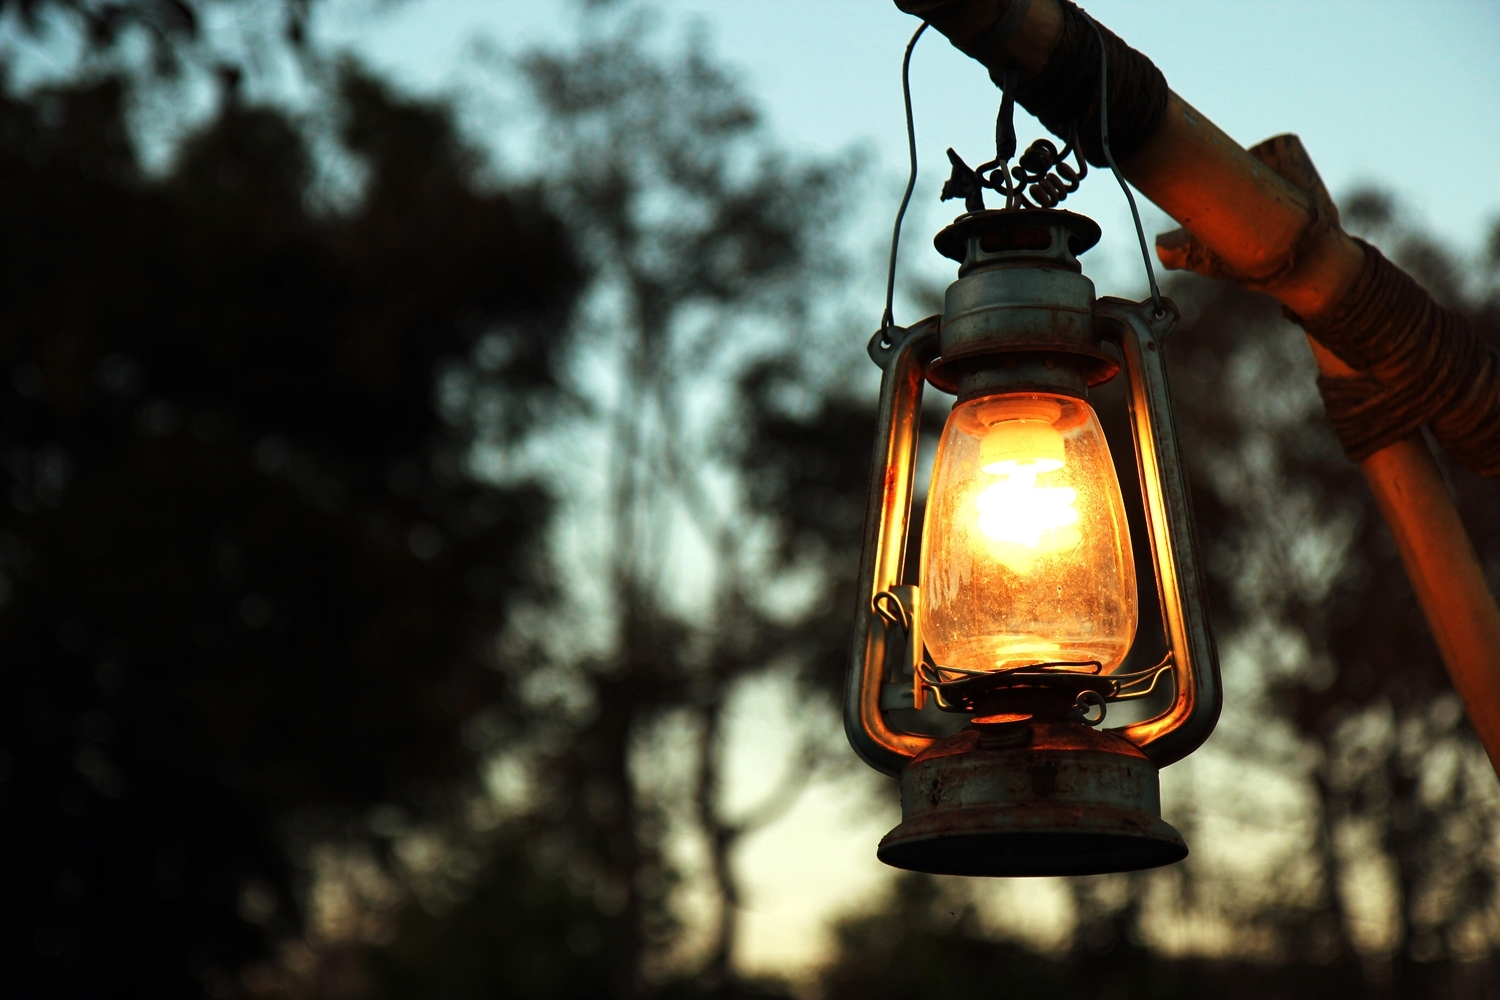 5 Best Kerosene Lanterns & Oil Lamps For Camping In 2018! pertaining to Outdoor Kerosene Lanterns (Image 1 of 20)